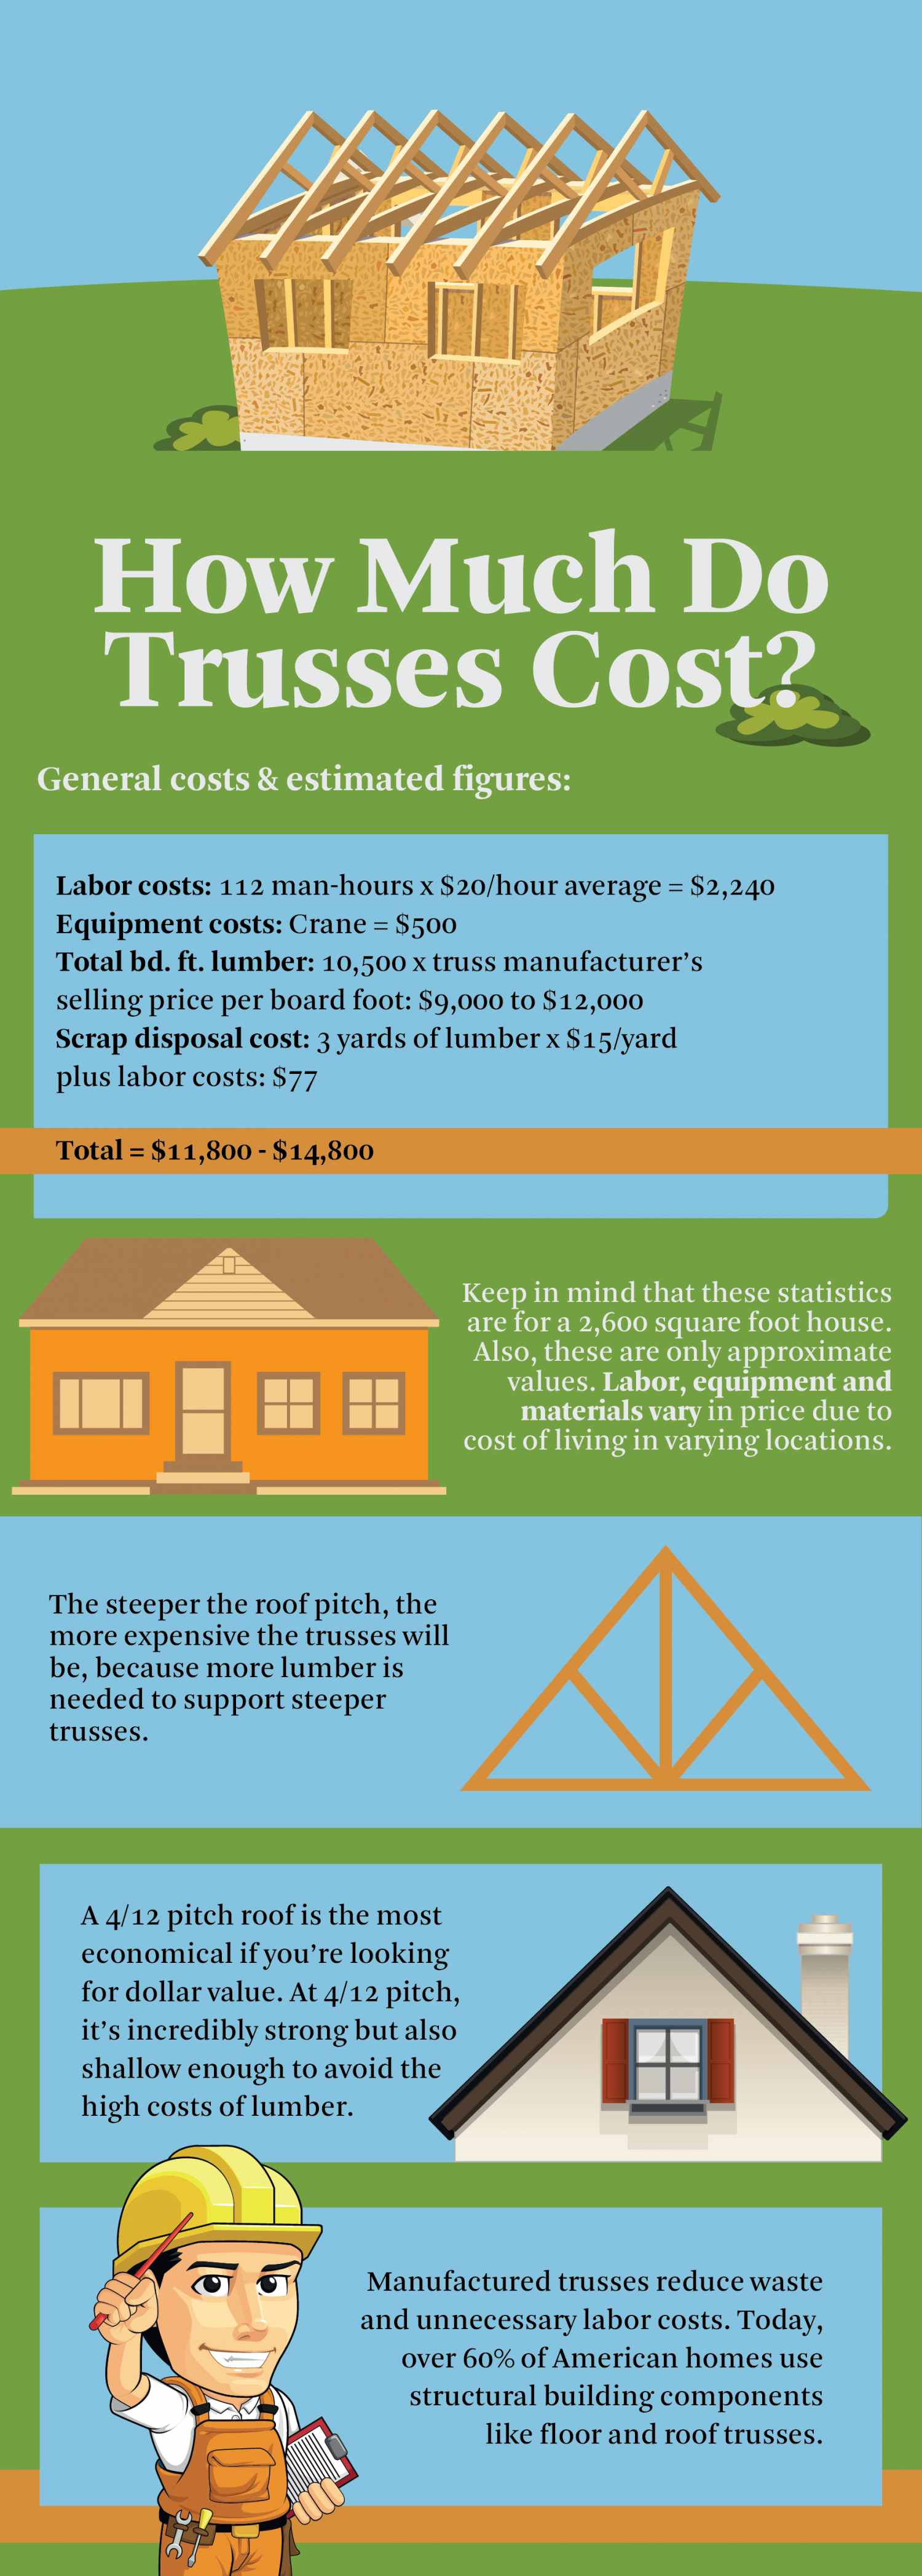 how much do trusses cost infographic